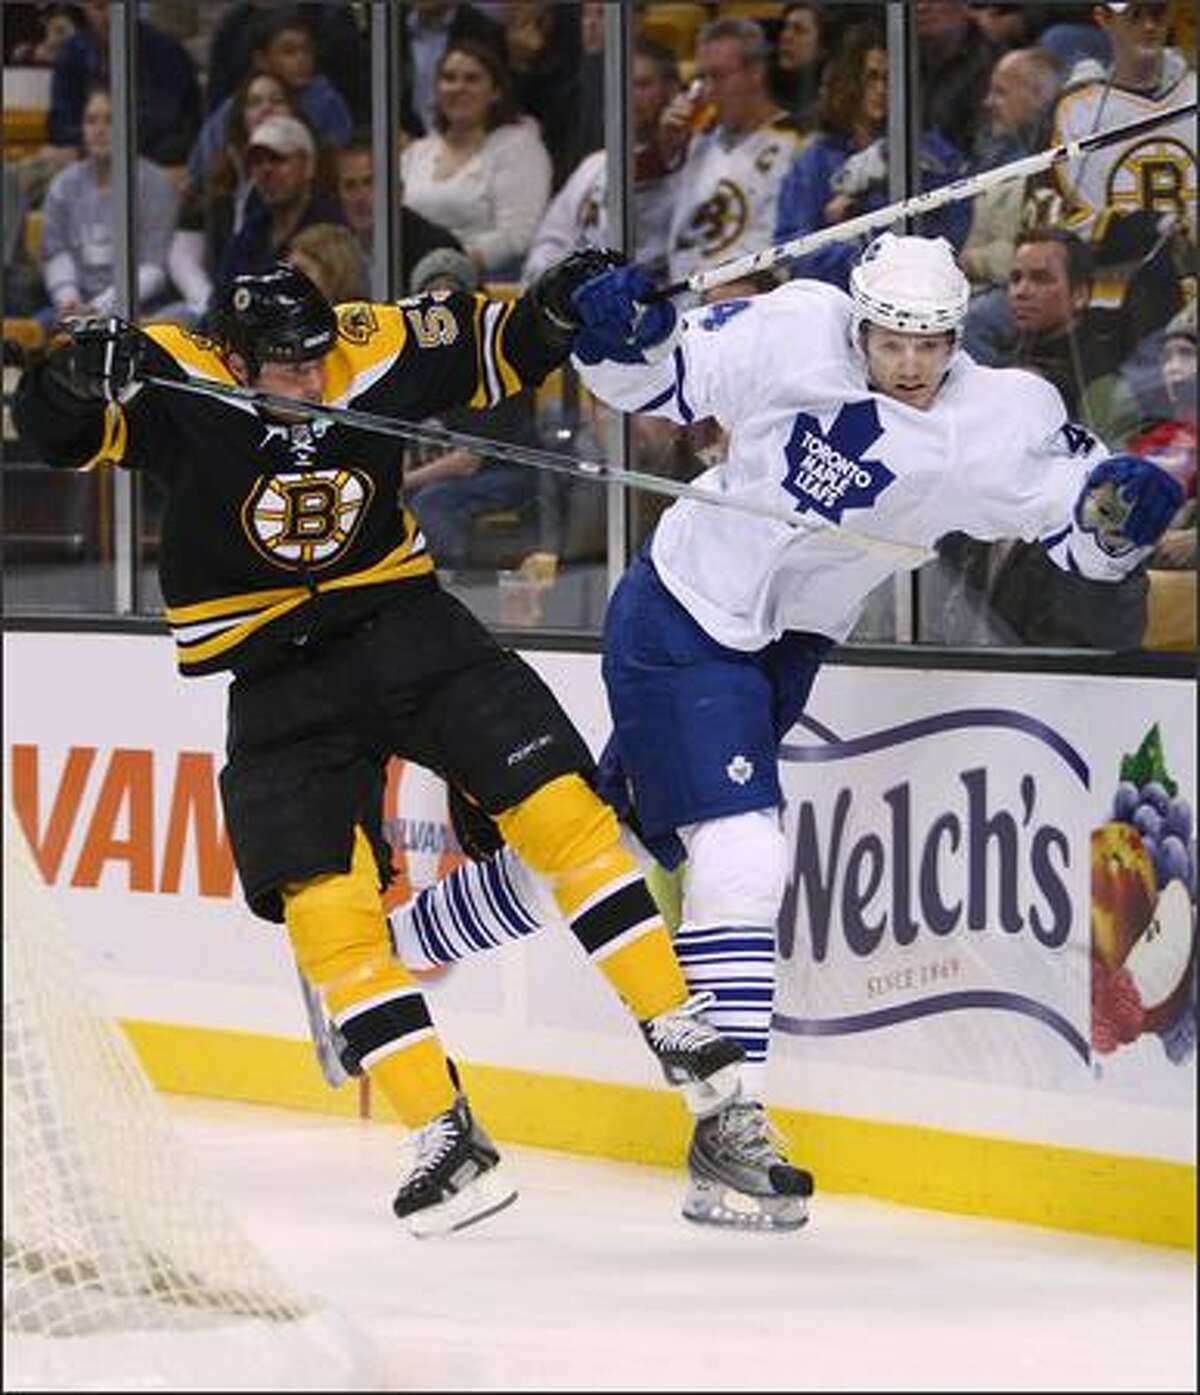 Jeremy Reich #53 of the Boston Bruins and Staffan Kronwall #44 of the Toronto Maple Leafs collide at the TD Banknorth Garden in Boston, Massachusetts. (Photo by Elsa/Getty Images)